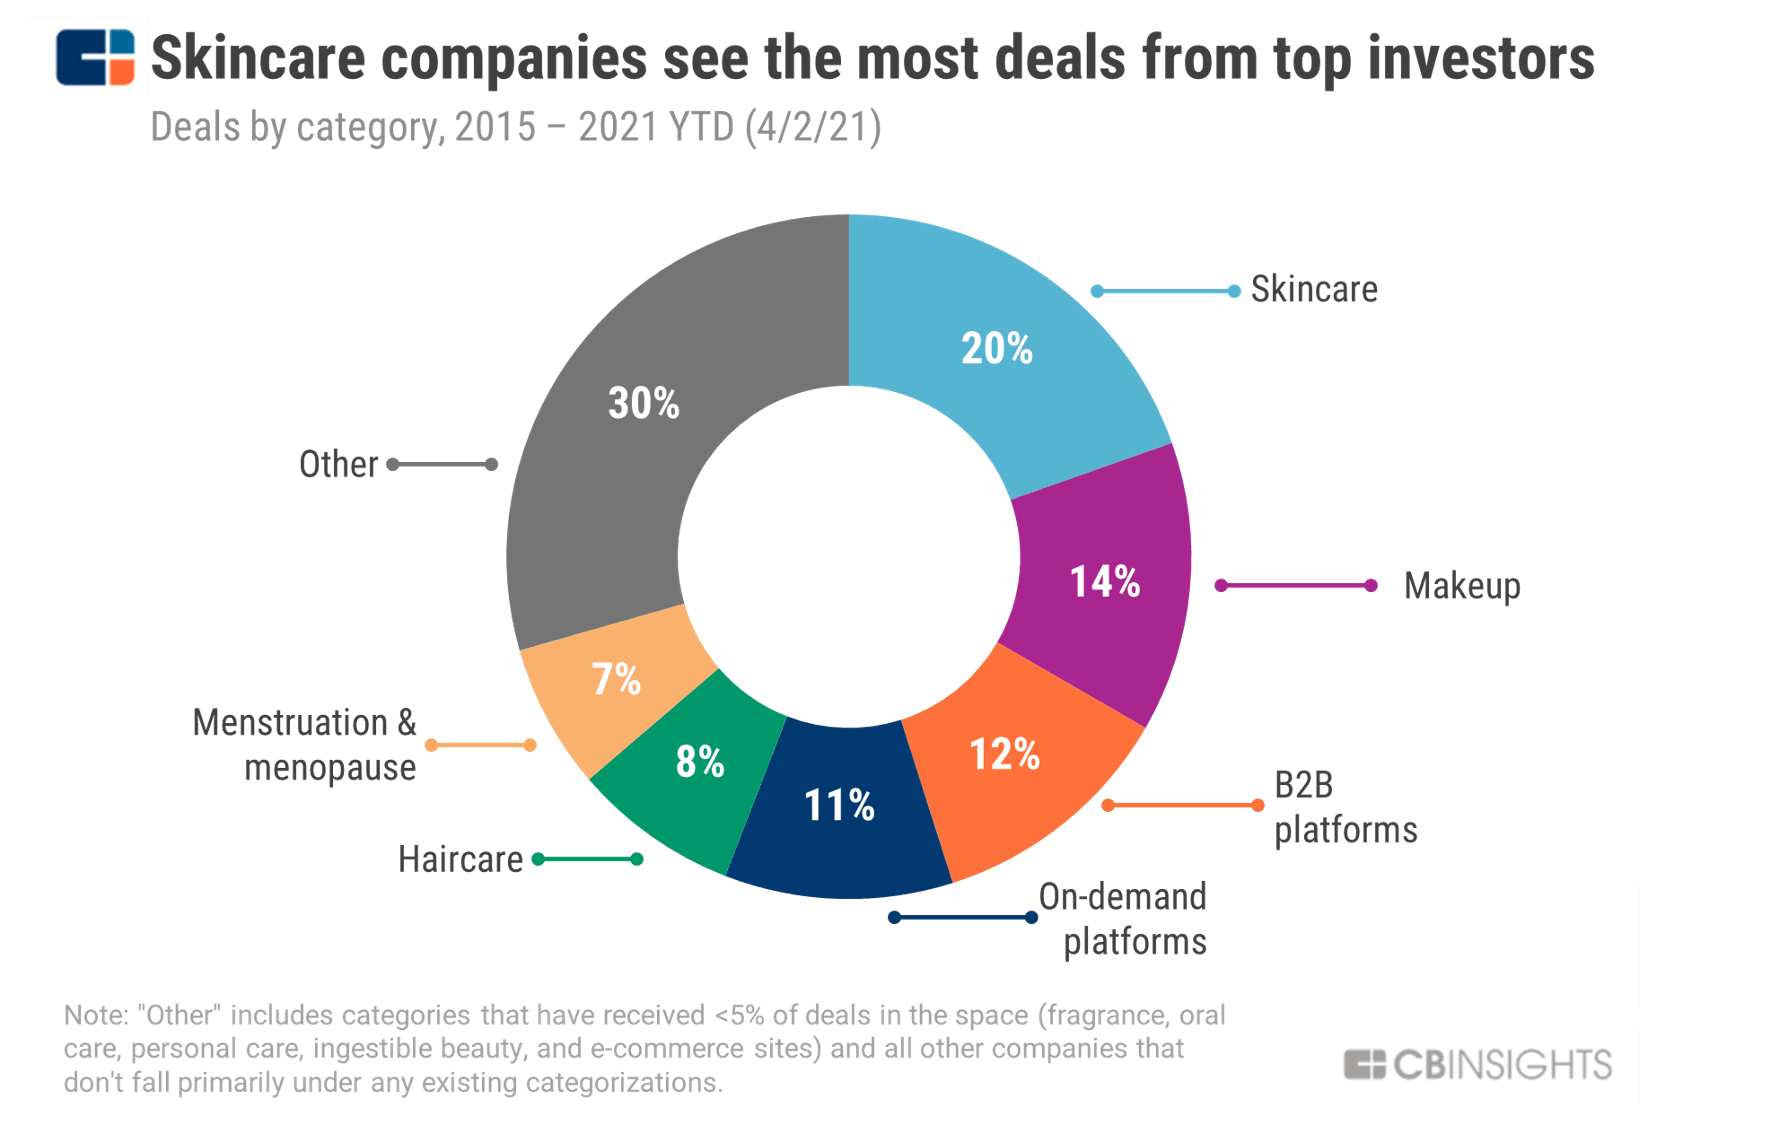 Pie chart depicting how skincare companies see the most deals from top investors, followed by makeup, B2B platforms, and on-demand platforms.